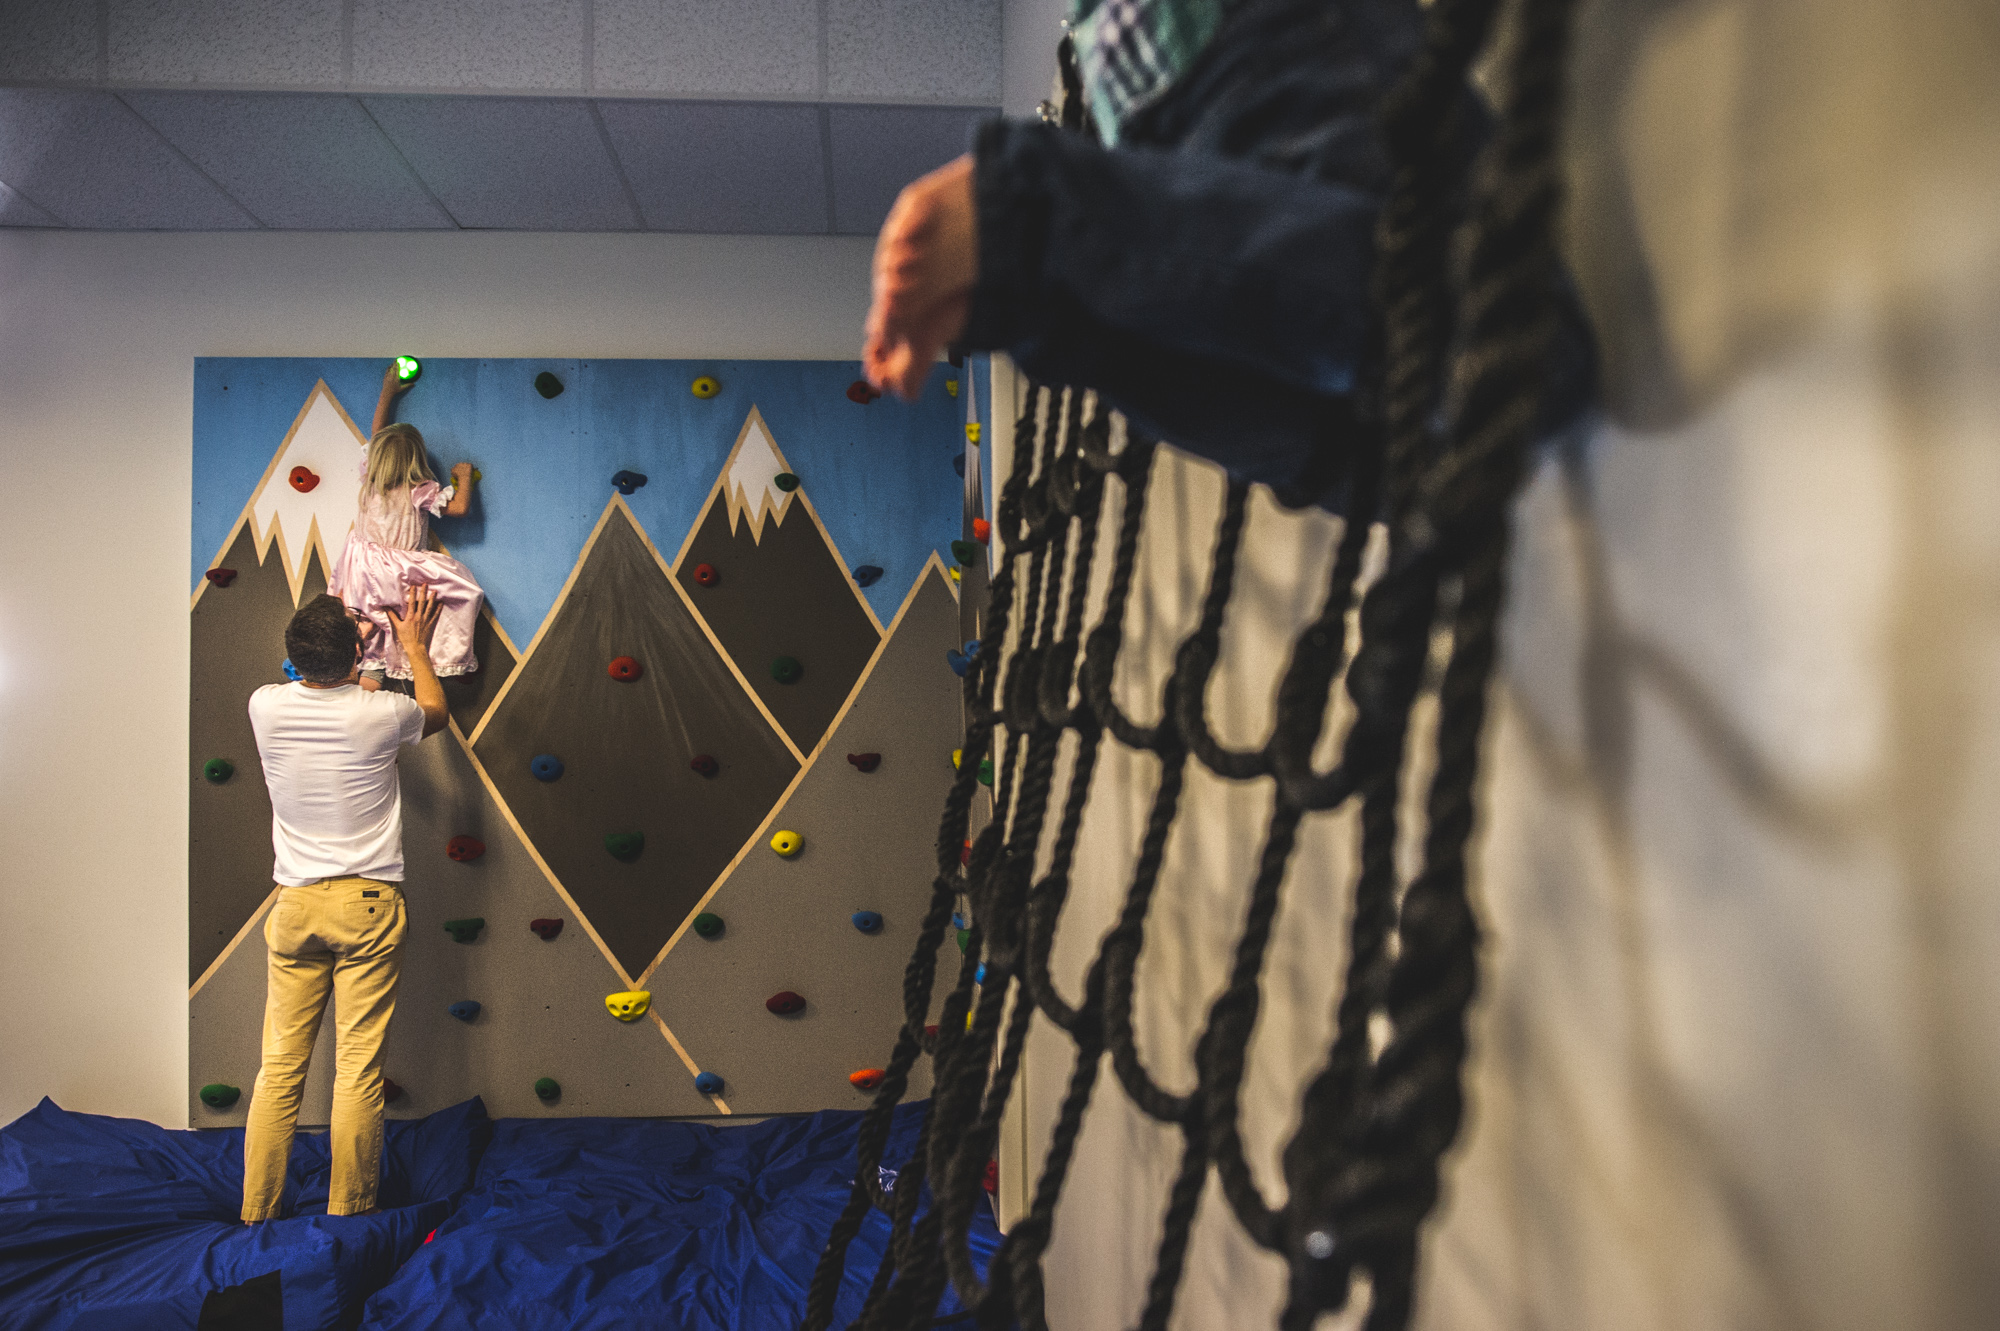 A young girl climbs a rock wall with the help of her dad while wearing a pink princess dress. In the foreground to the right can be seen the legs of a little boy climbing a net. Littleton, Colorado.